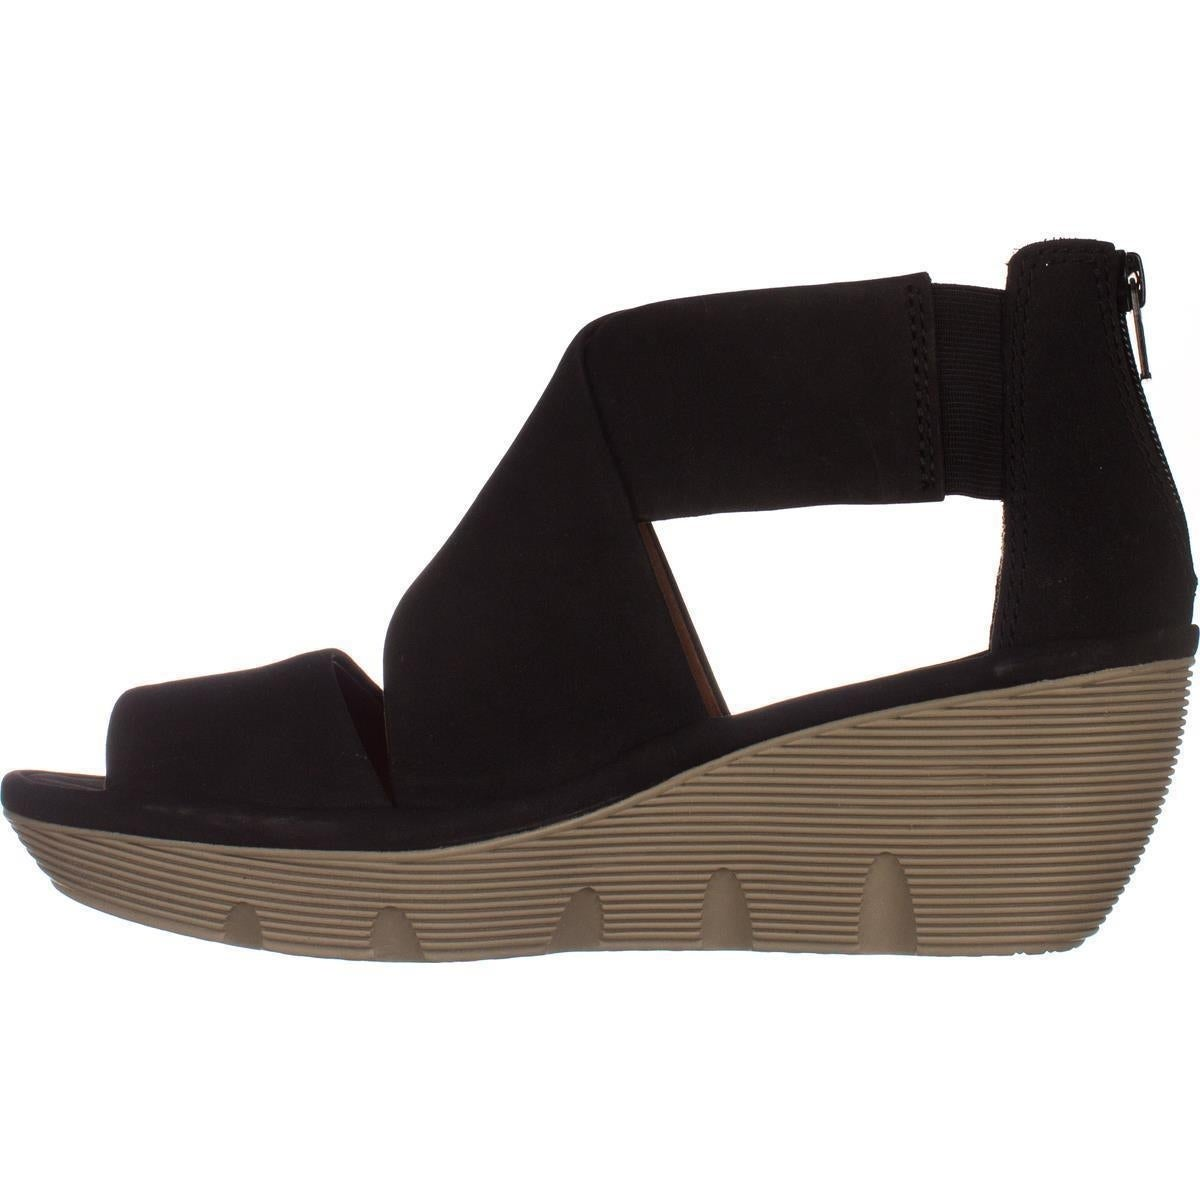 04e5c968e36 Shop Clarks Clarene Glamor Comfort Wedge Sandals